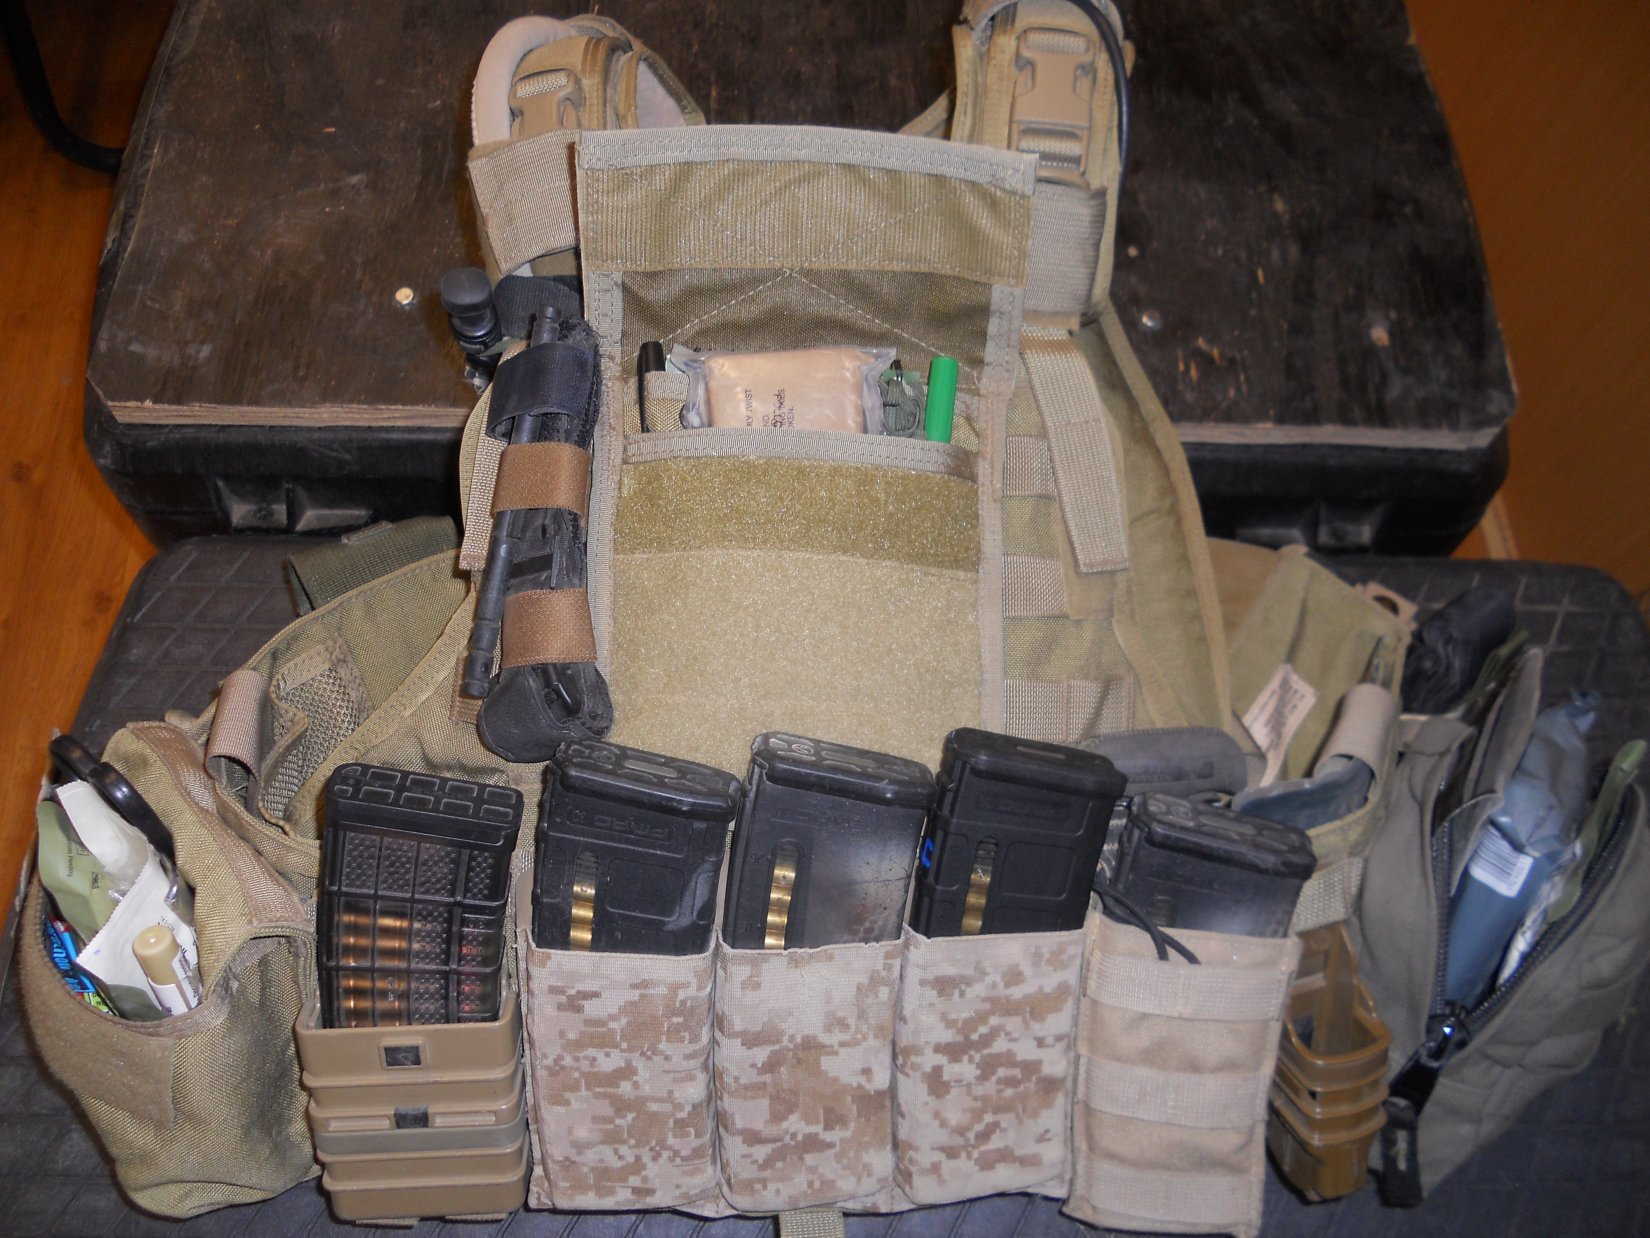 IFAK Individual First Aid Kit Tactical Medicine Combat Medicine Jeff Gurwitch Pic E Individual First Aid Kit (IFAK): Tactical Medicine/Combat Medicine Kit for Military Infantry, Special Operations Forces (SOF) and Civilian Tactical Shooters!